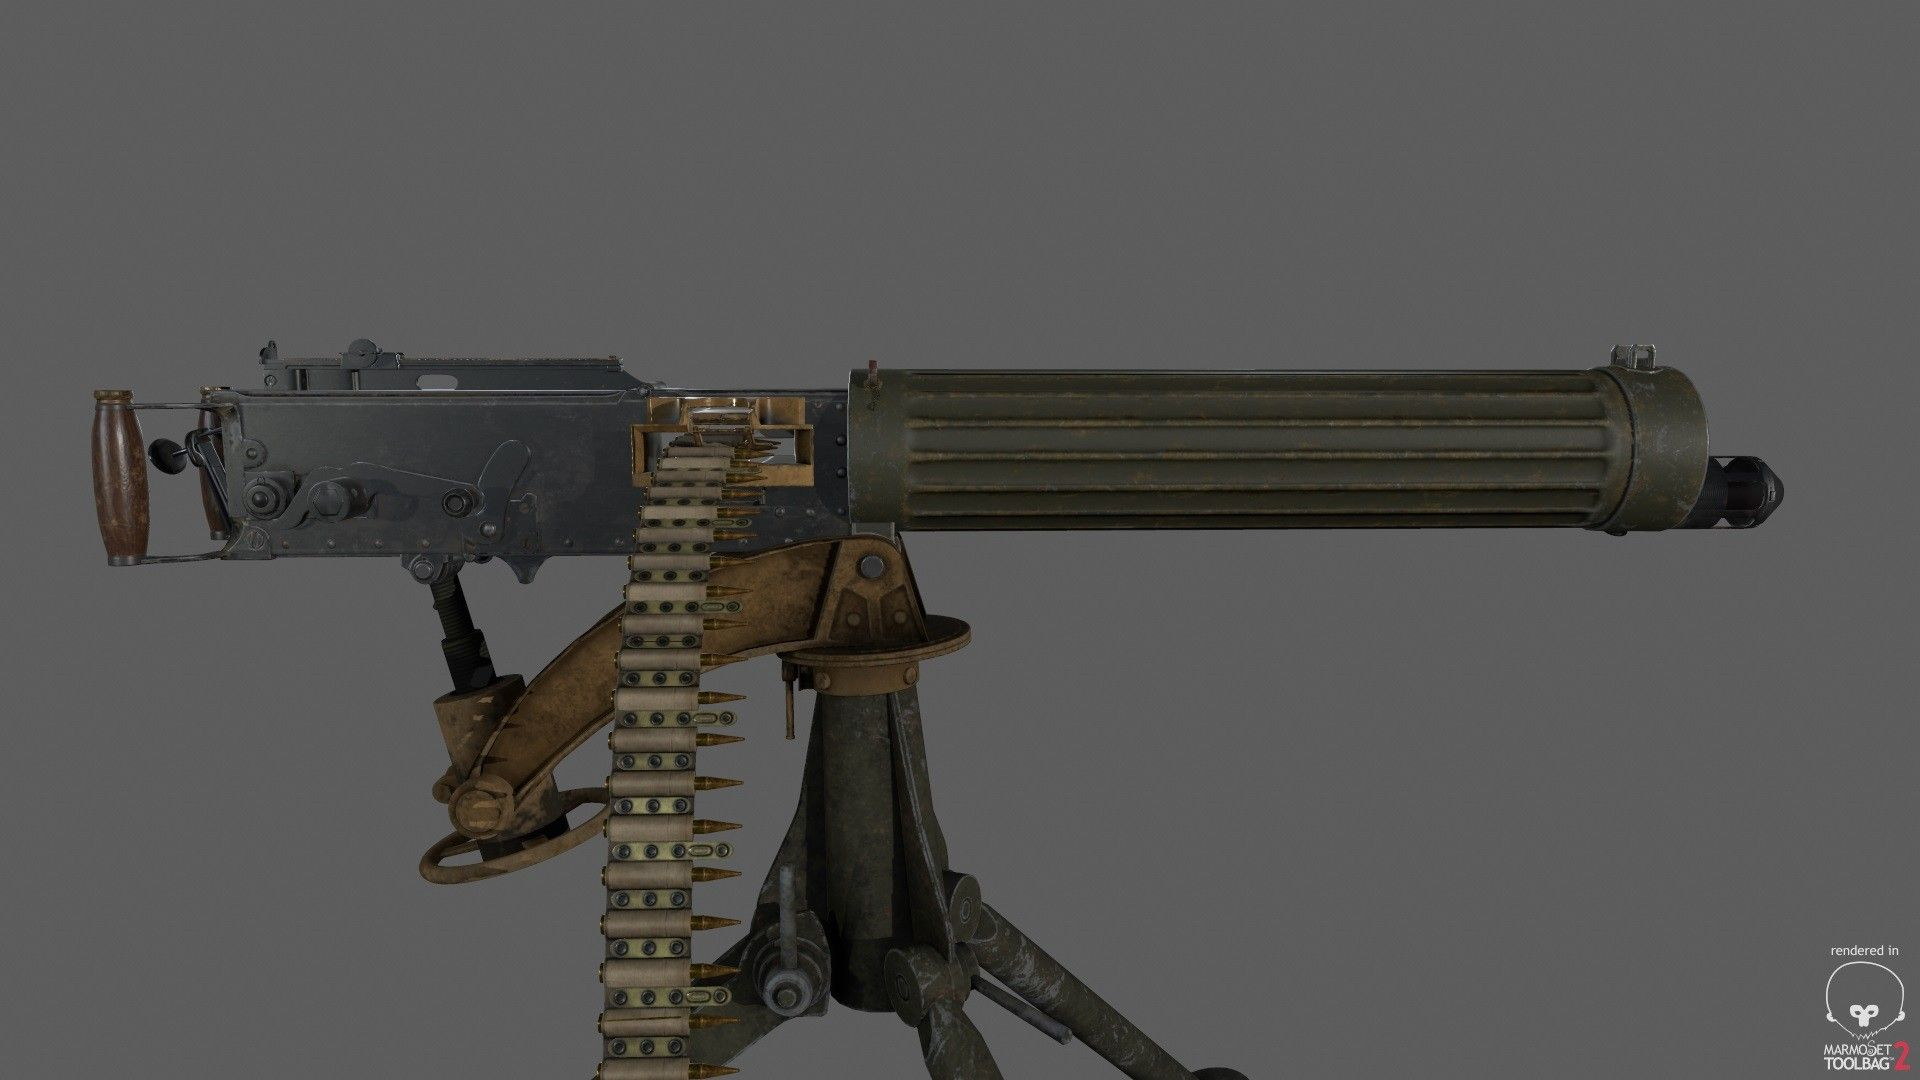 ArtStation - Vickers Machine Gun, John Eyre | Vickers Maxim | Guns